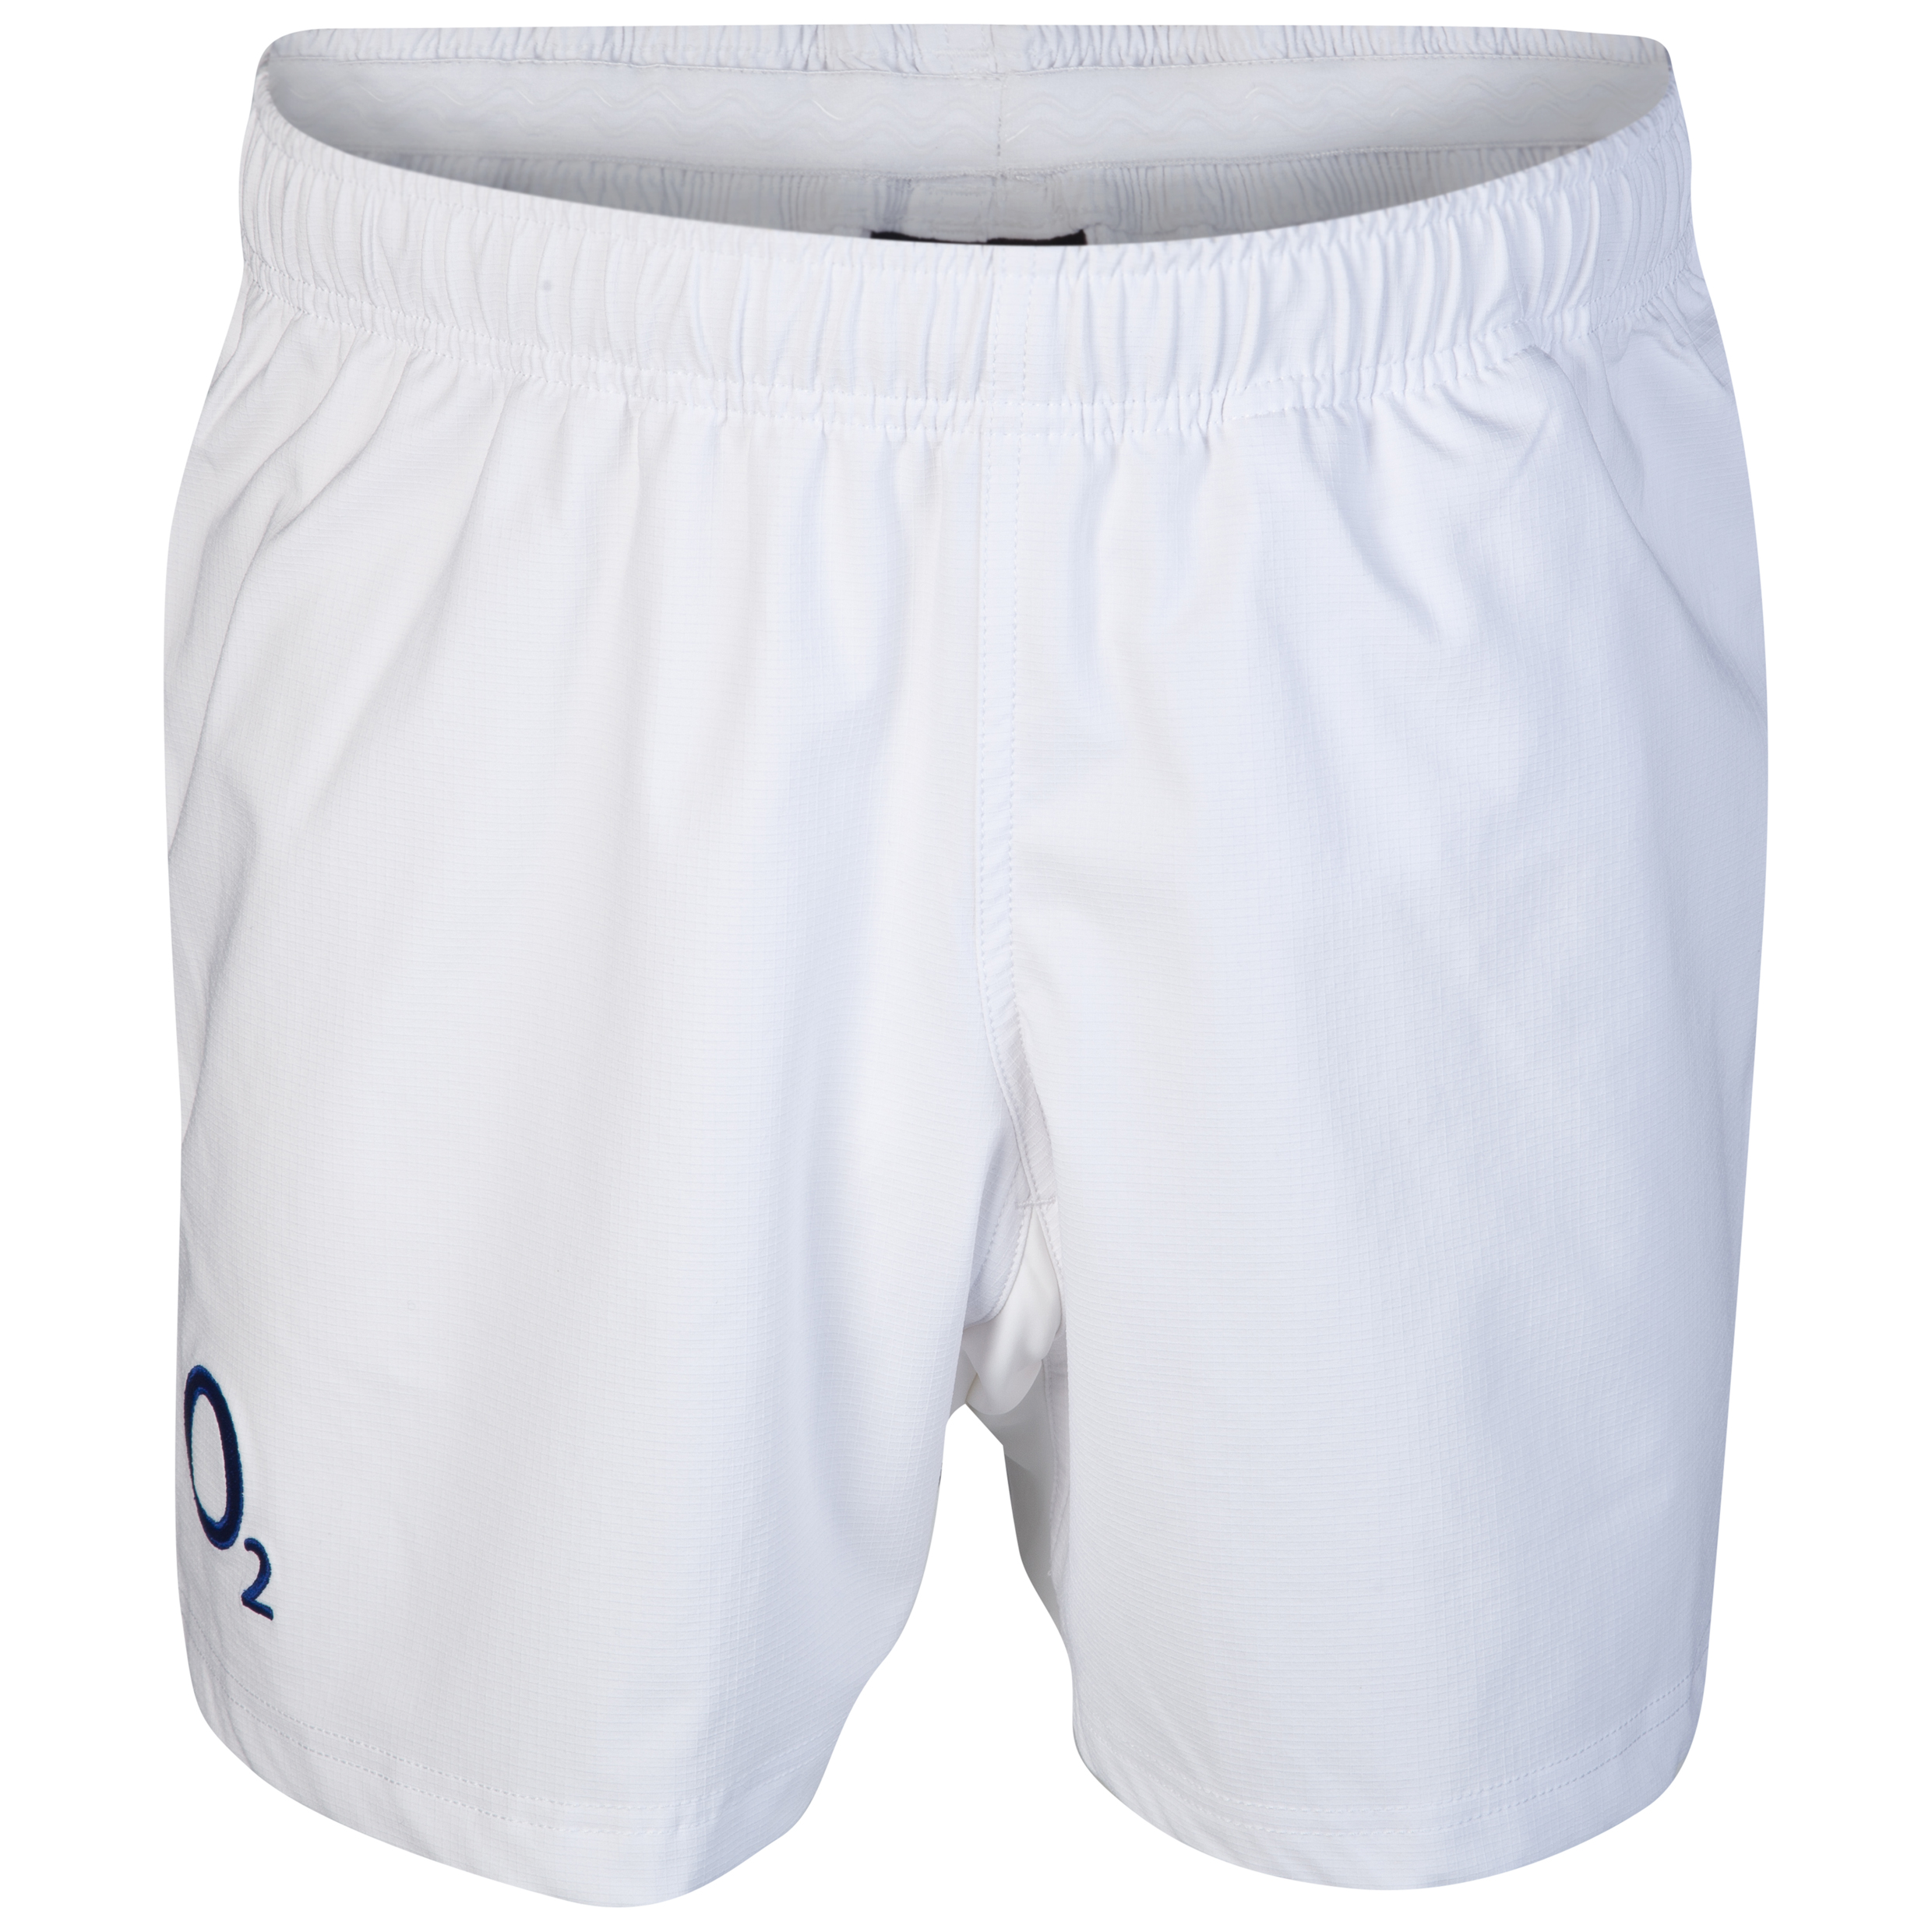 England Home Short 2012/13 - Youth